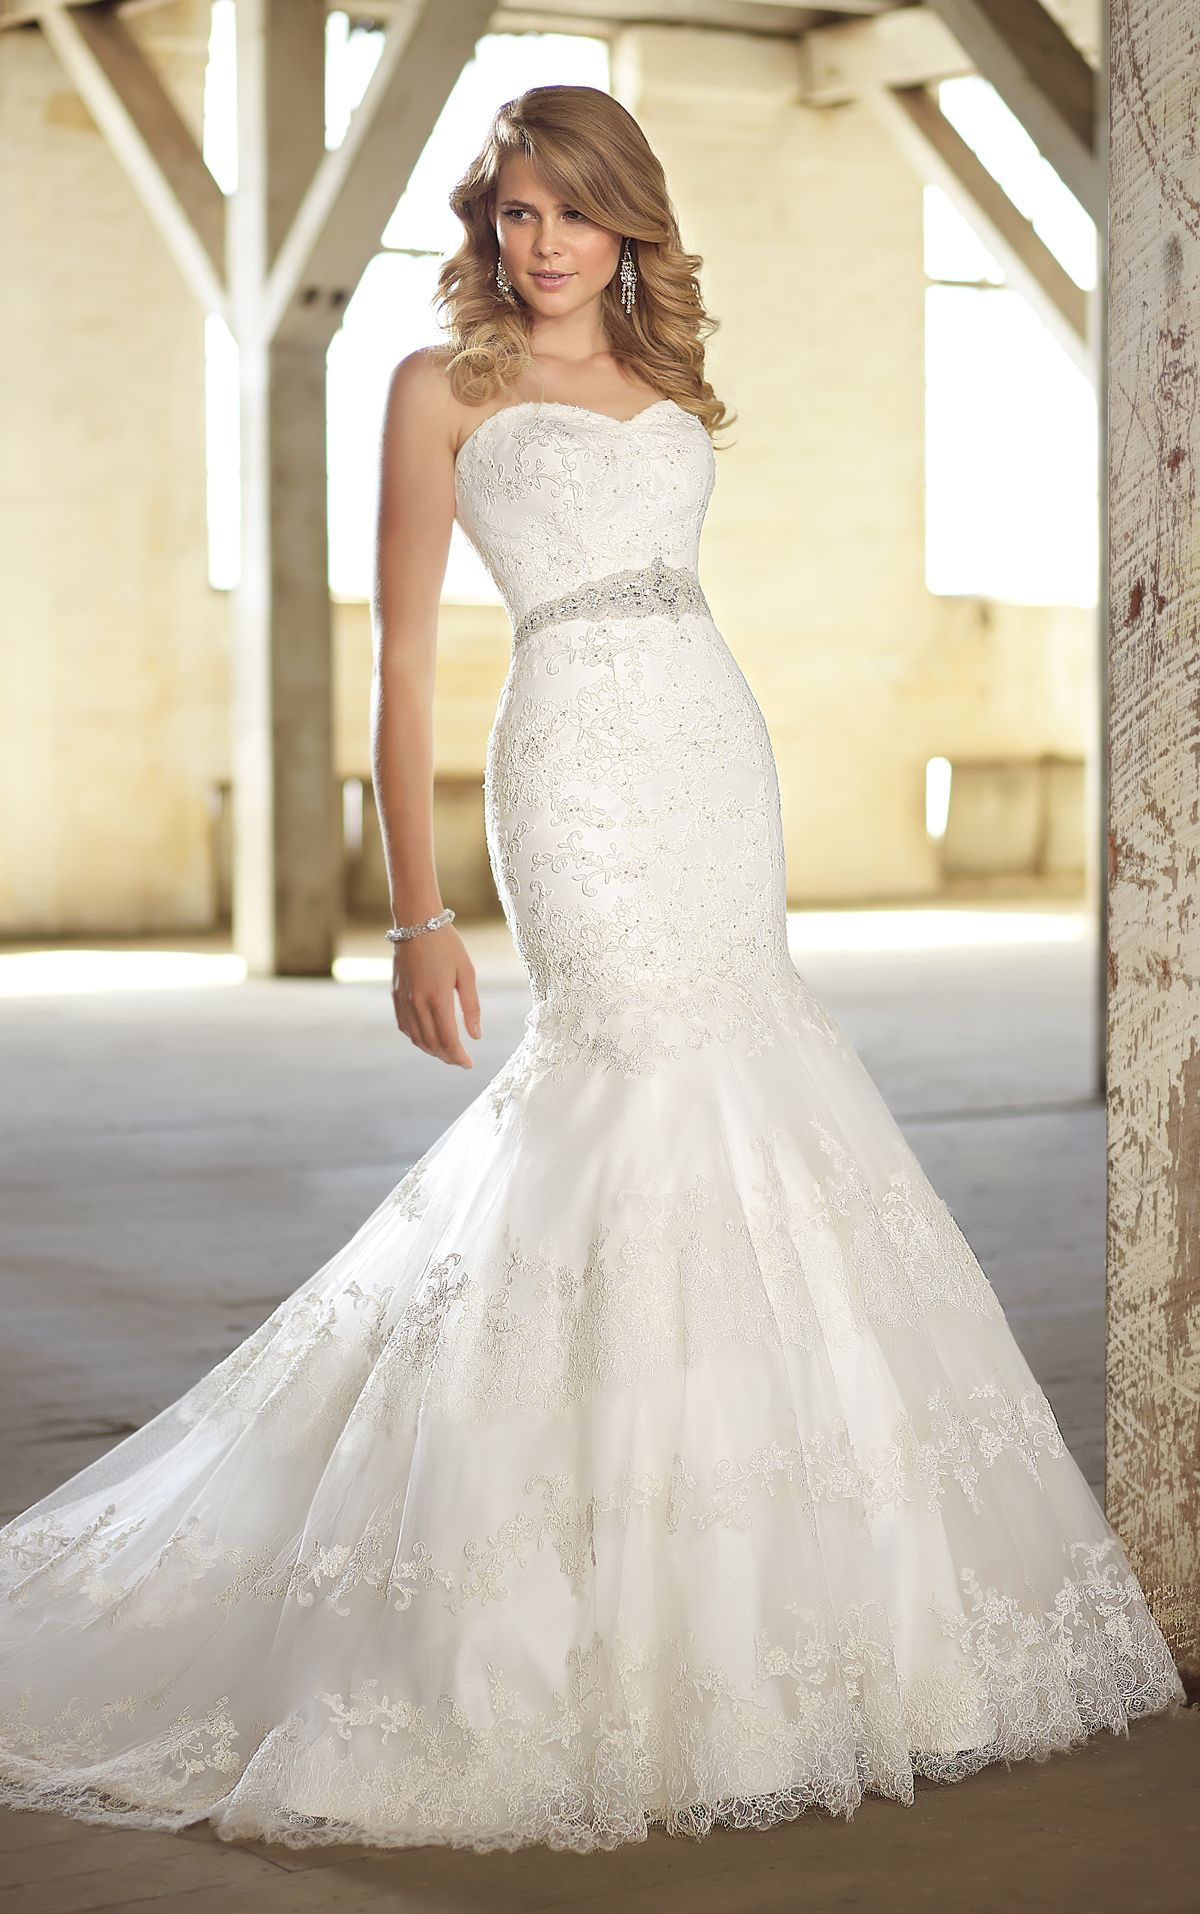 Form fitting lace wedding dresses  Pin by Shandy Conaway on wedding dress  Pinterest  Lace wedding